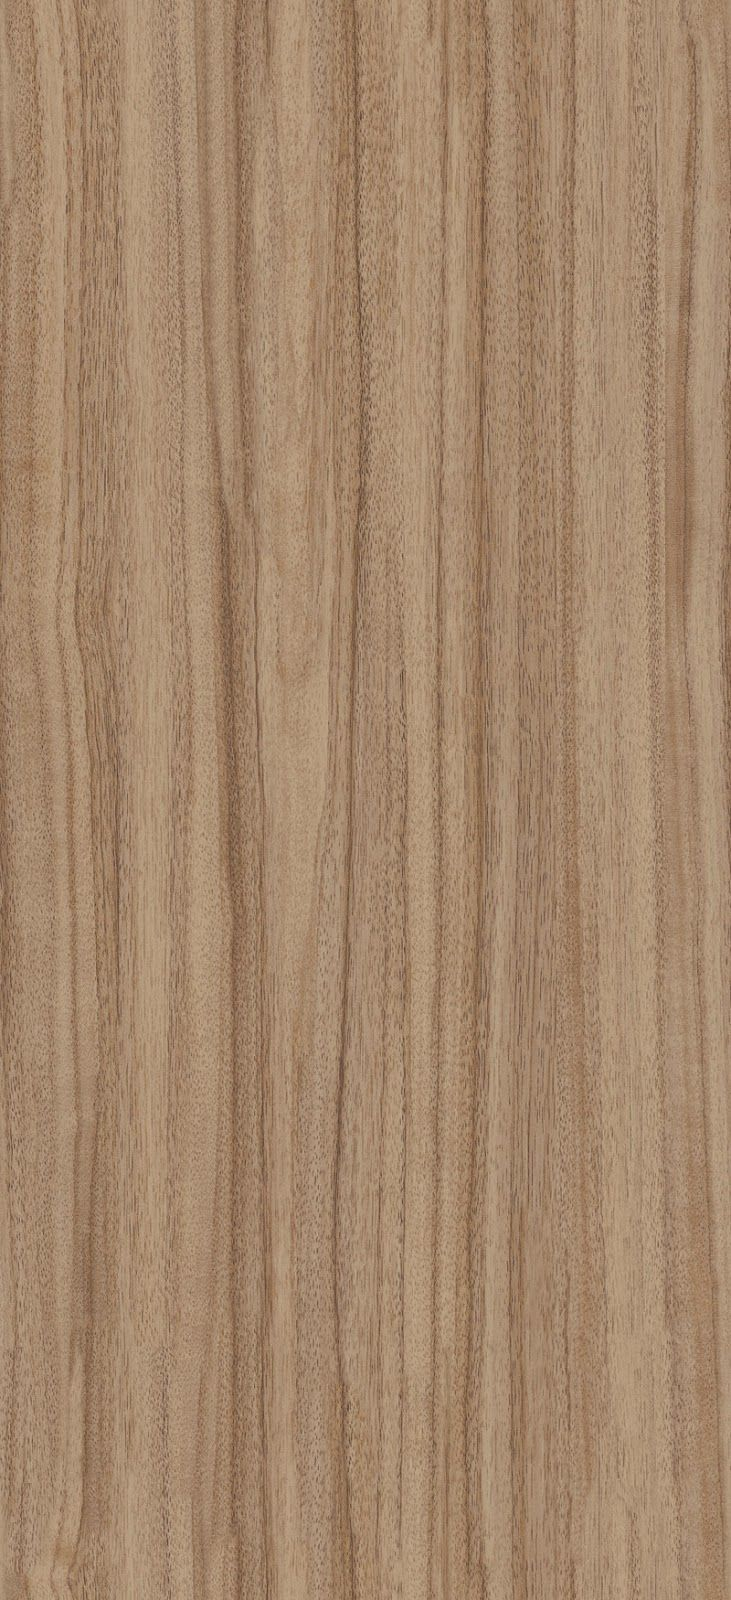 Parkett textur seamless  texturise: Seamless French Walnut Wood Texture | TEXTURES ...